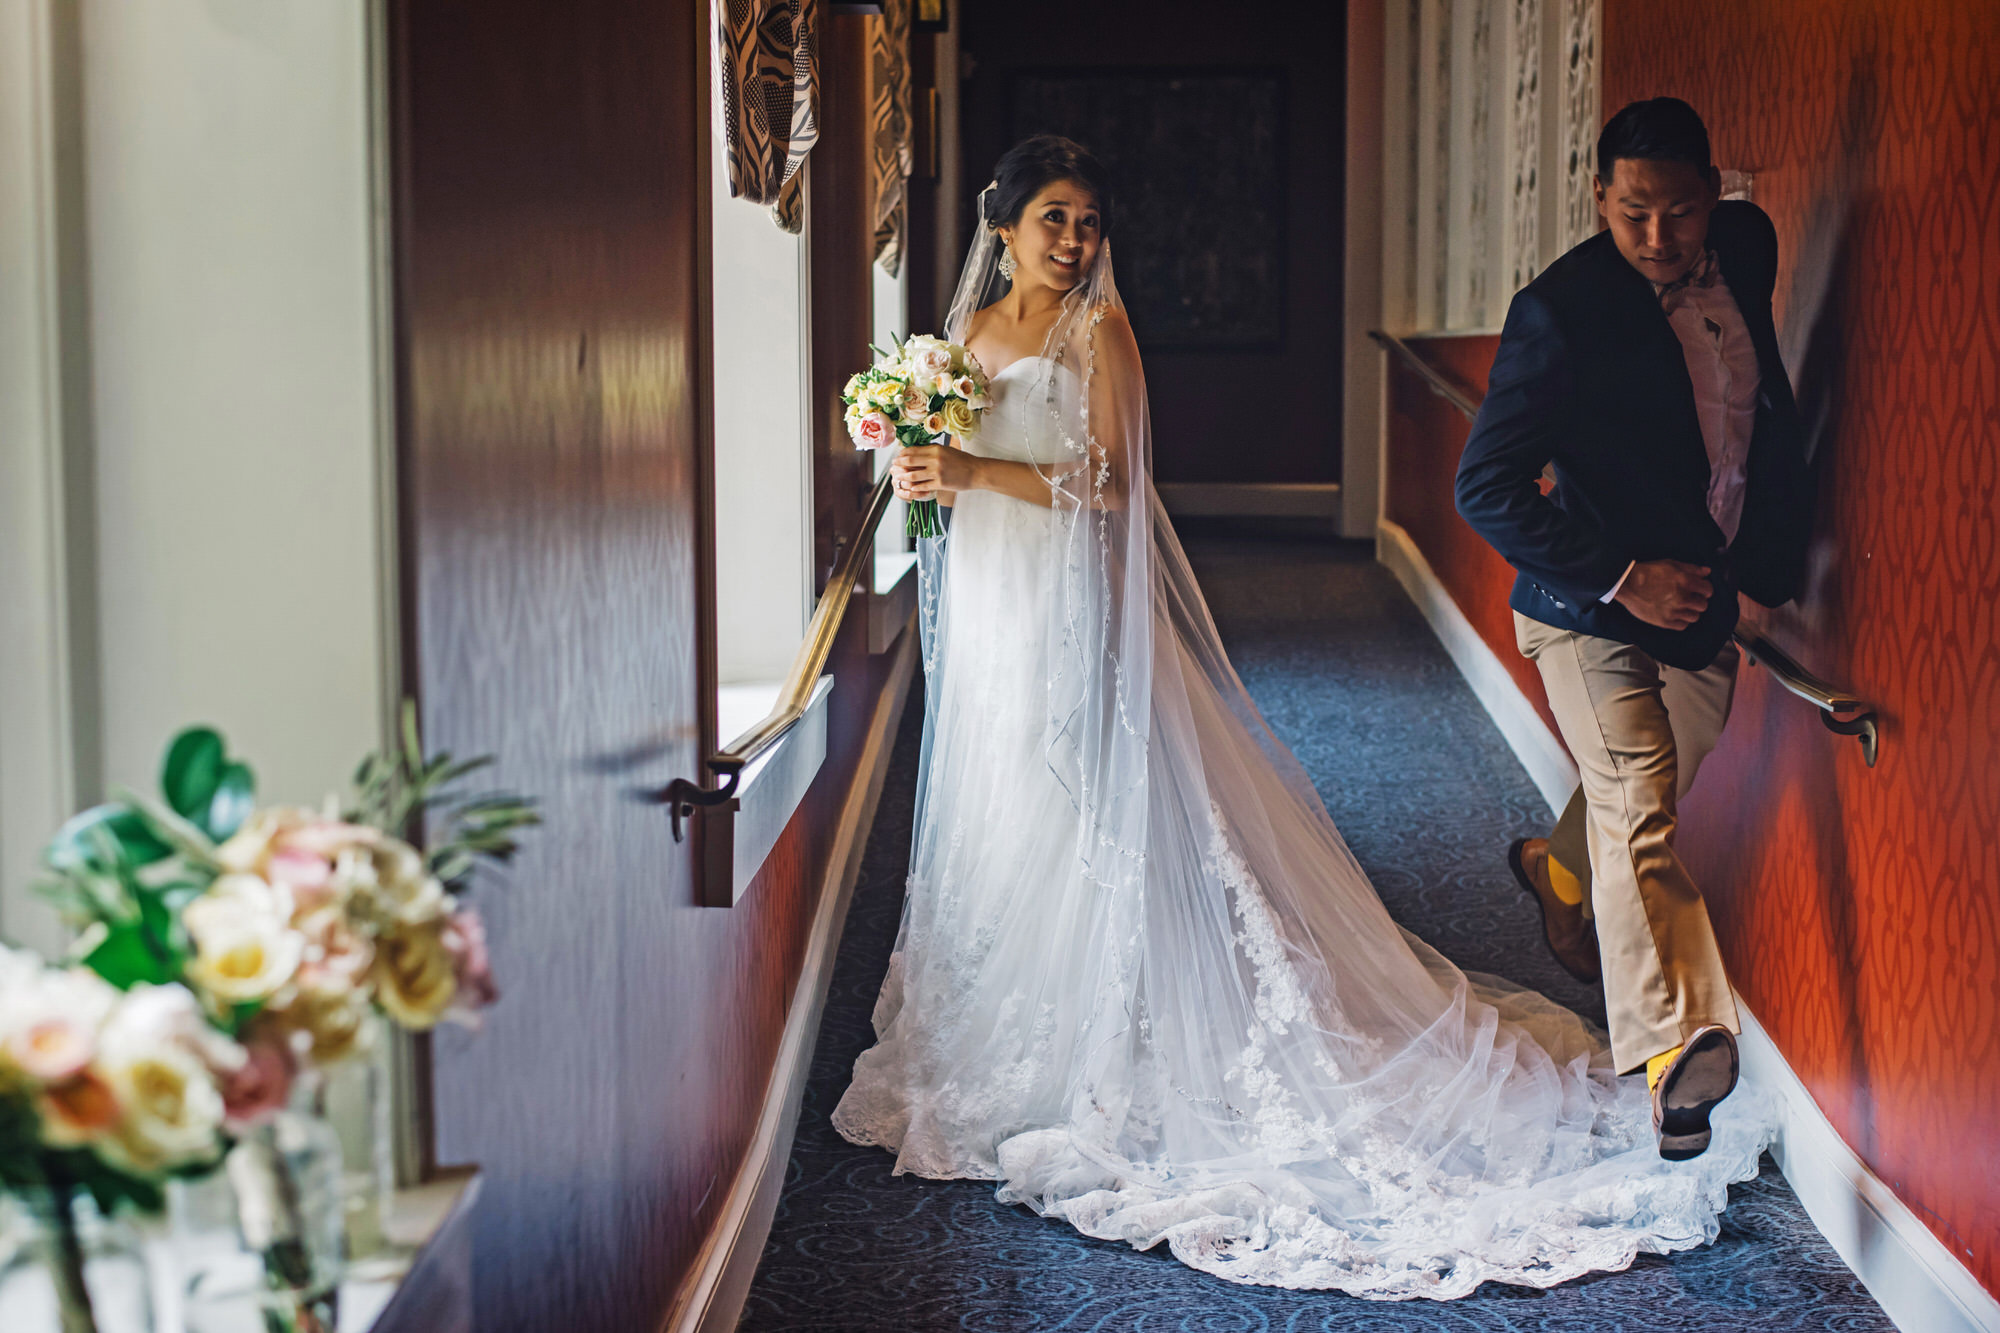 Man stepping over bridal train - photo by Ken Pak Photography